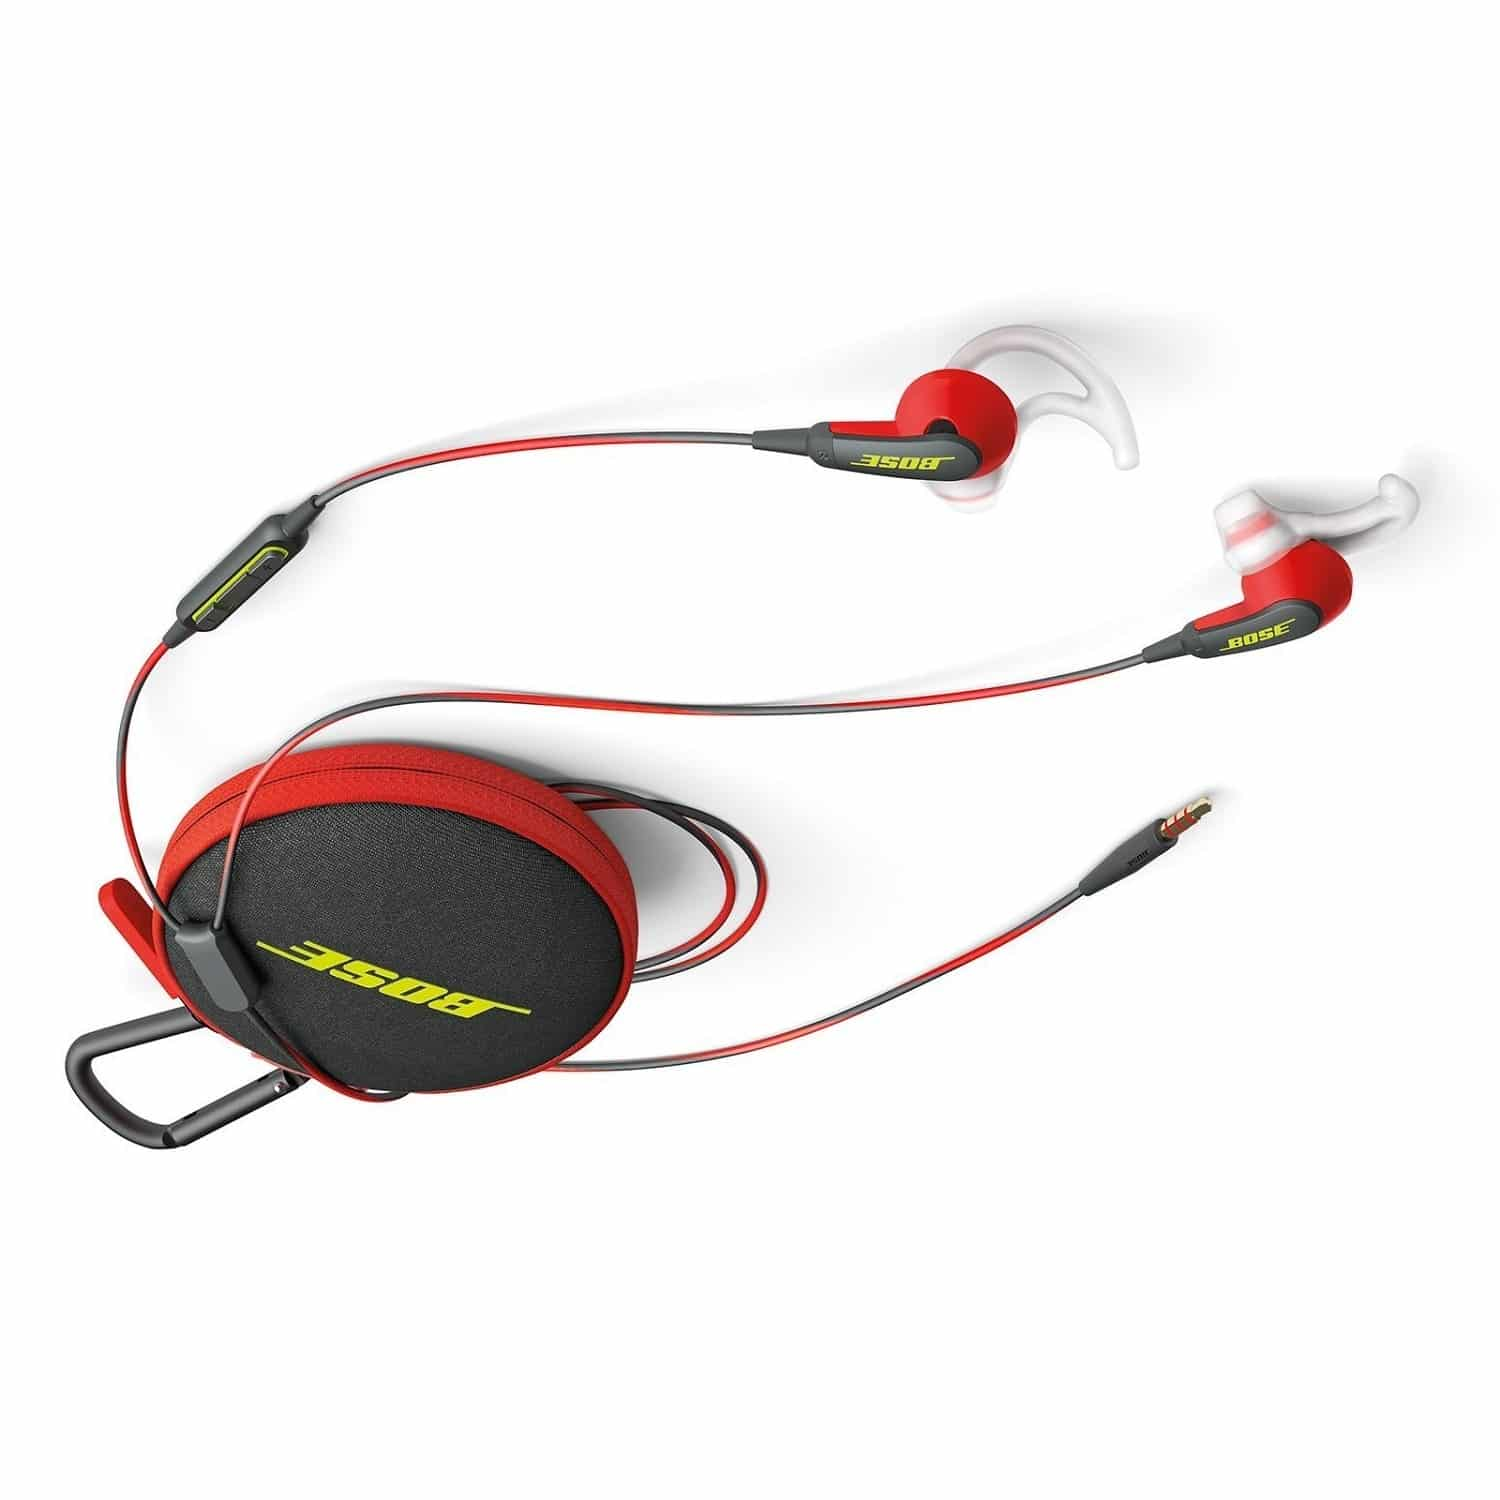 Bose SoundSport in-ear Headphones for small ear canals